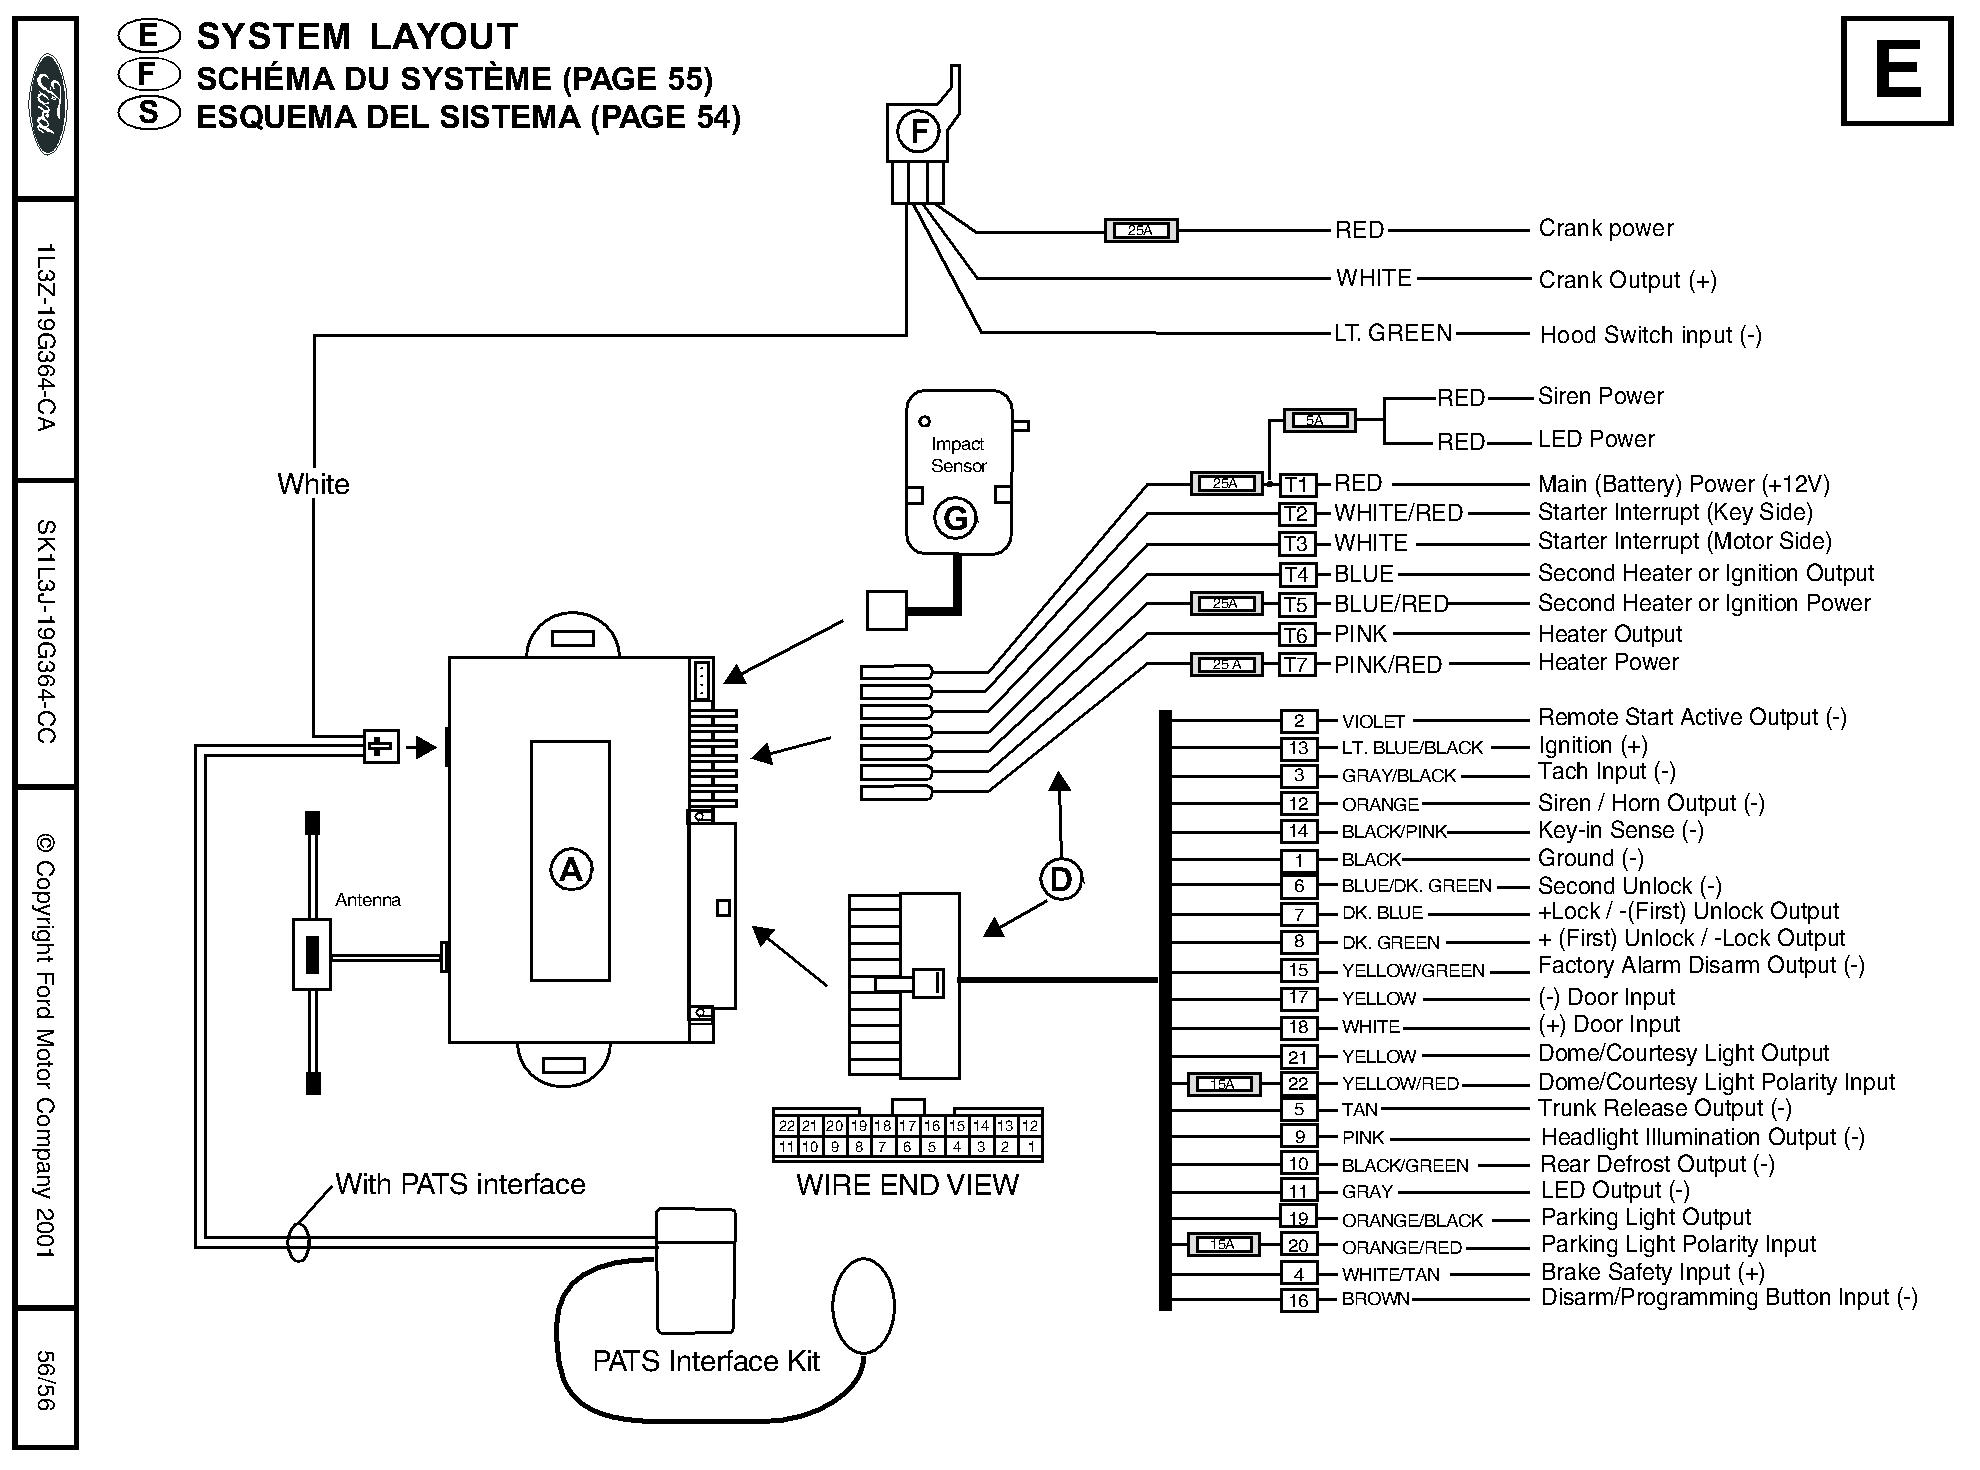 Valet 561r Wiring Diagram | Wiring Diagram on